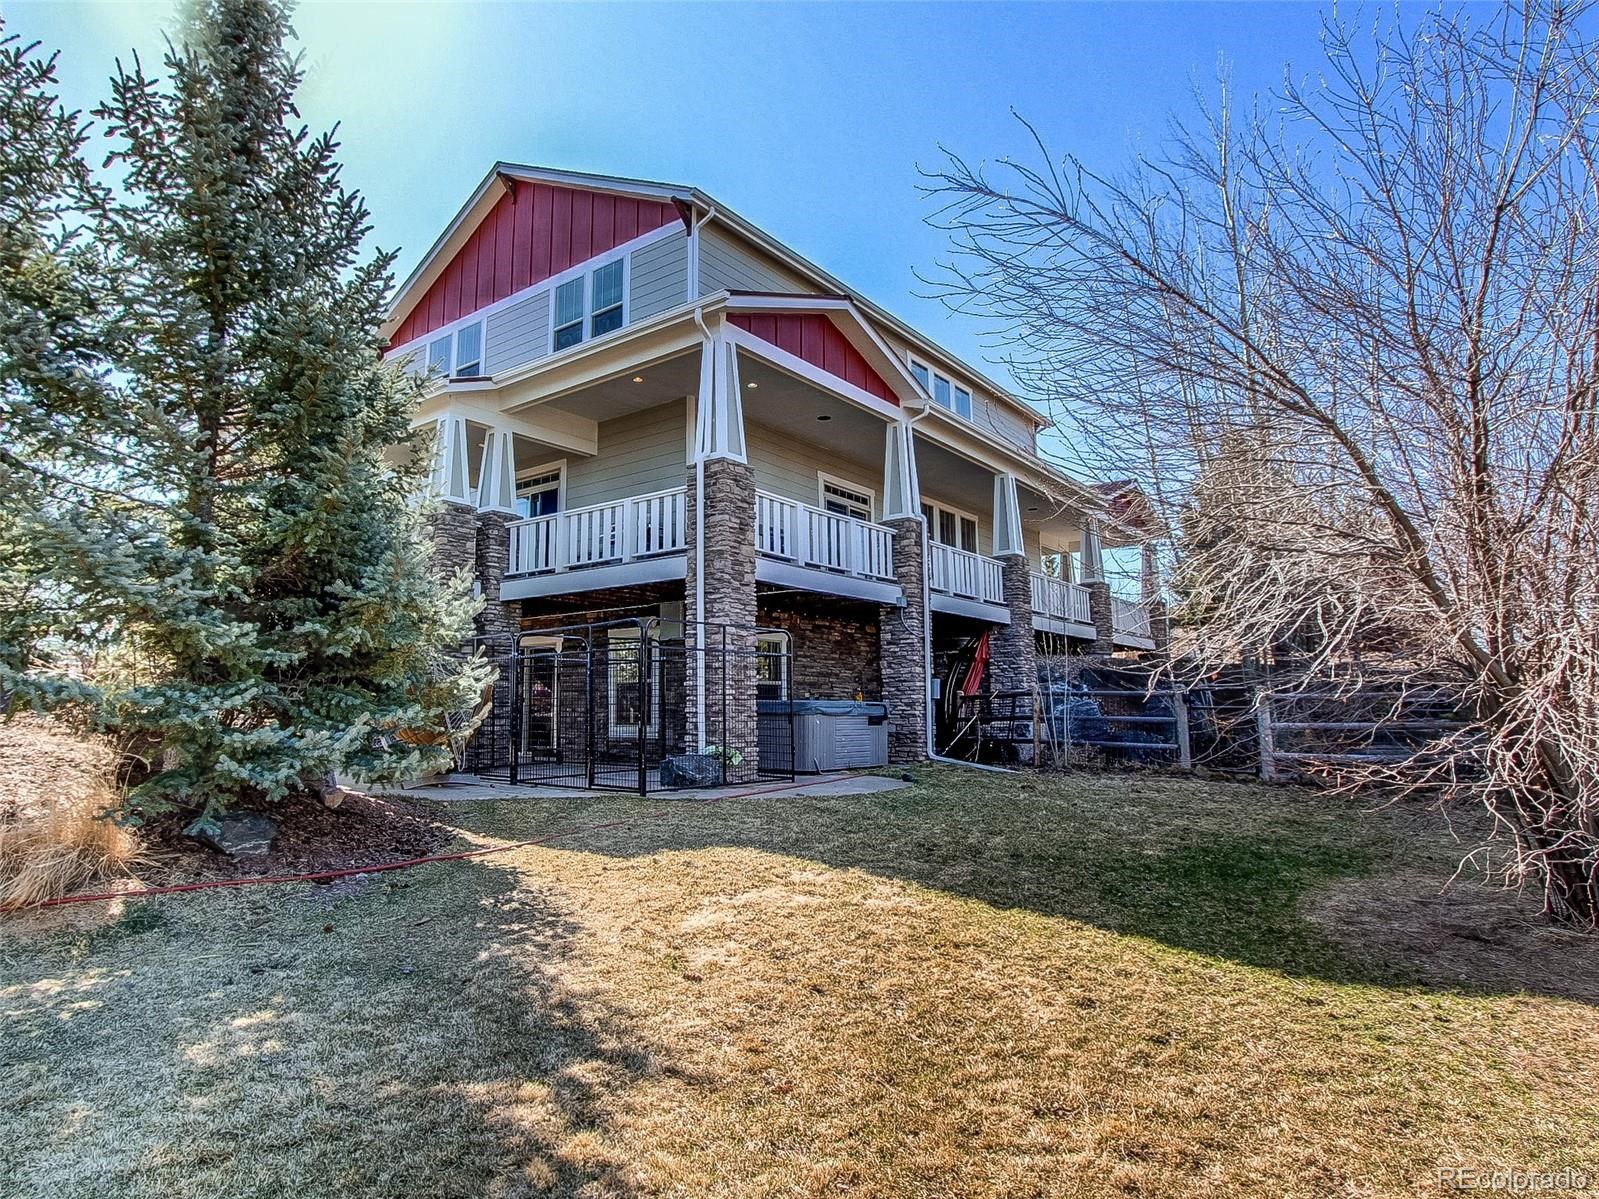 MLS# 4009651 - 36 - 33610 Tribute Circle, Elizabeth, CO 80107